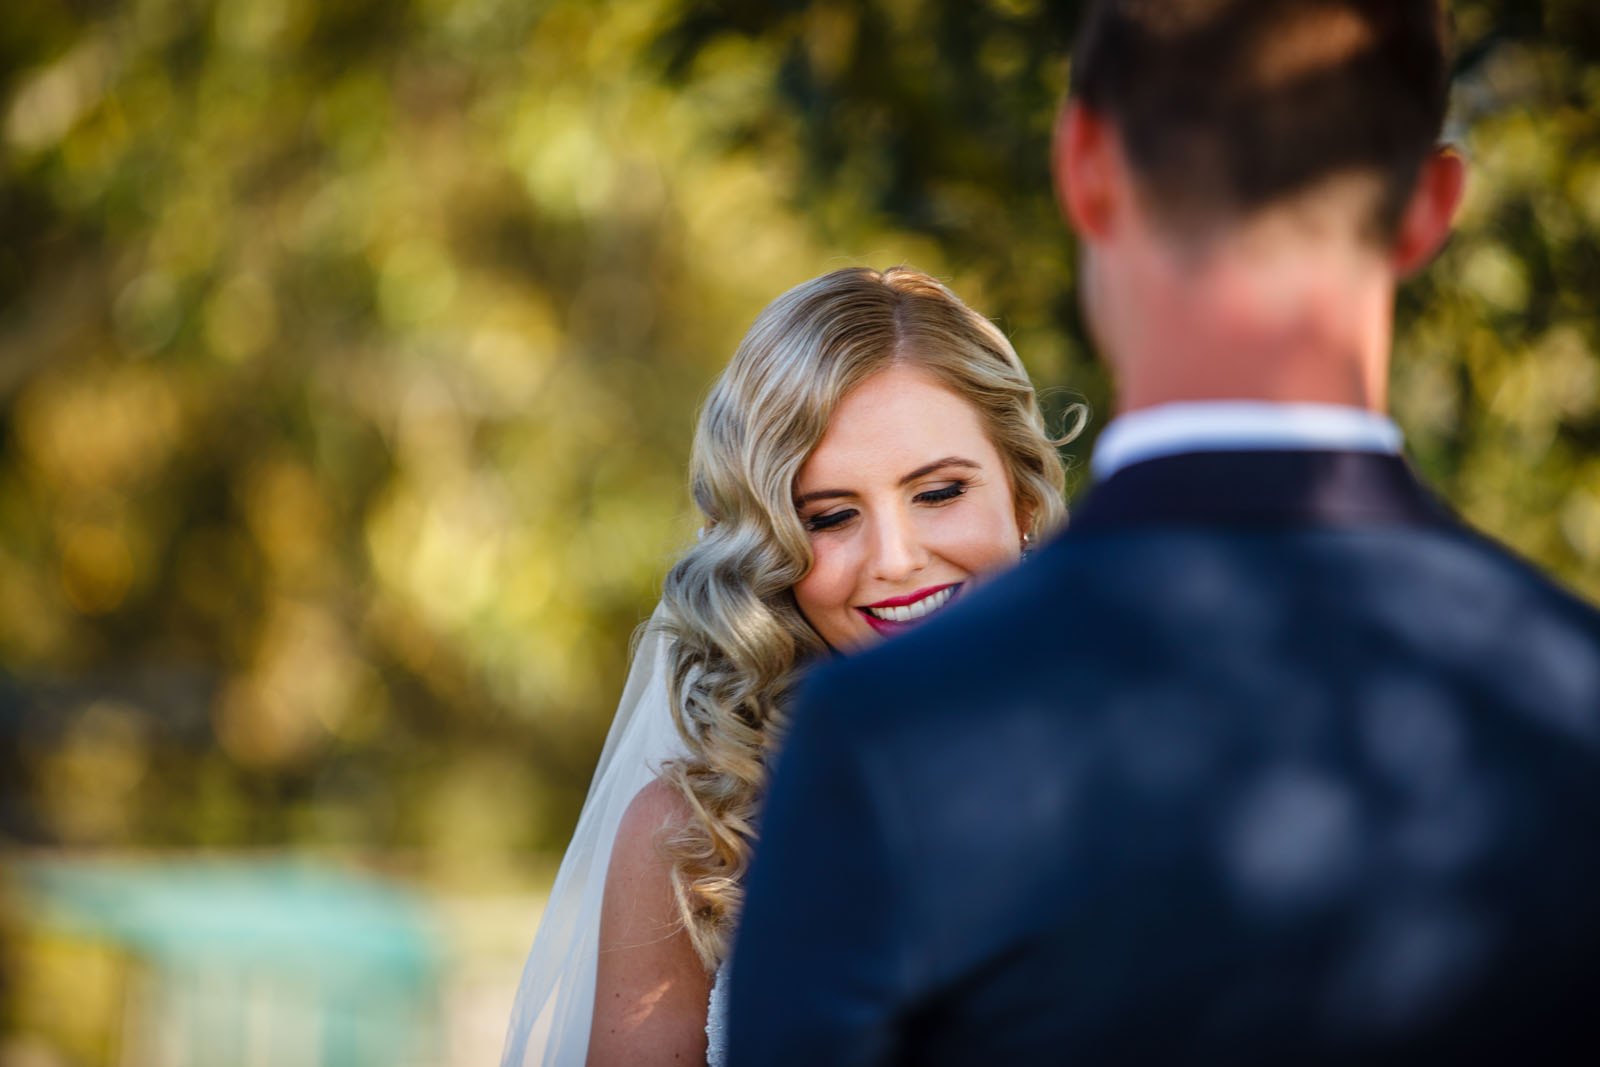 mount_tamborine_wedding_photographer_208